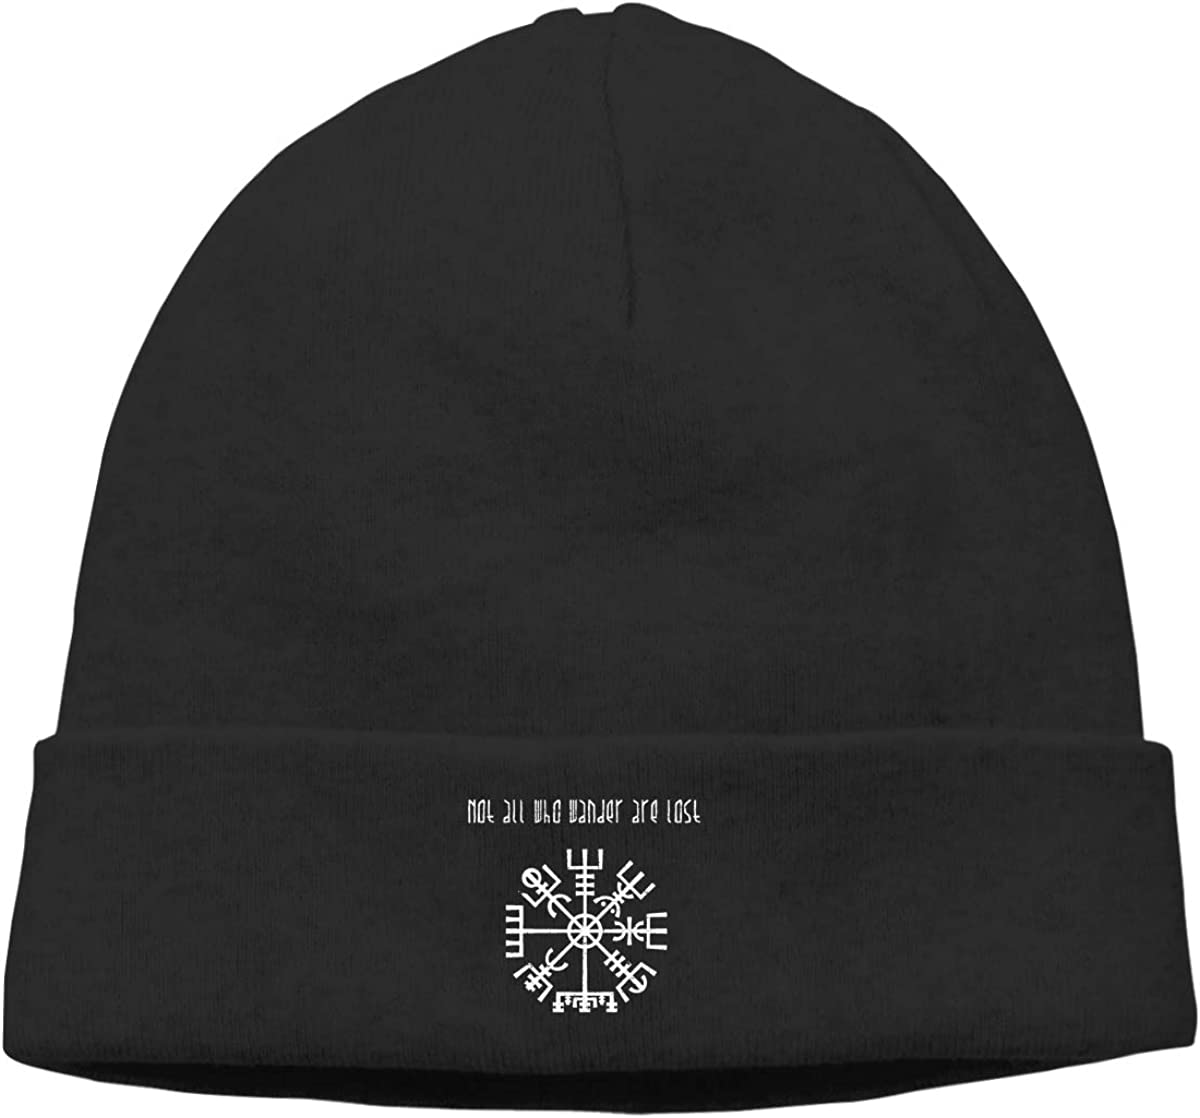 Beanies Knit Hat Skull Caps Not All Who Wander are Lost 10 Men